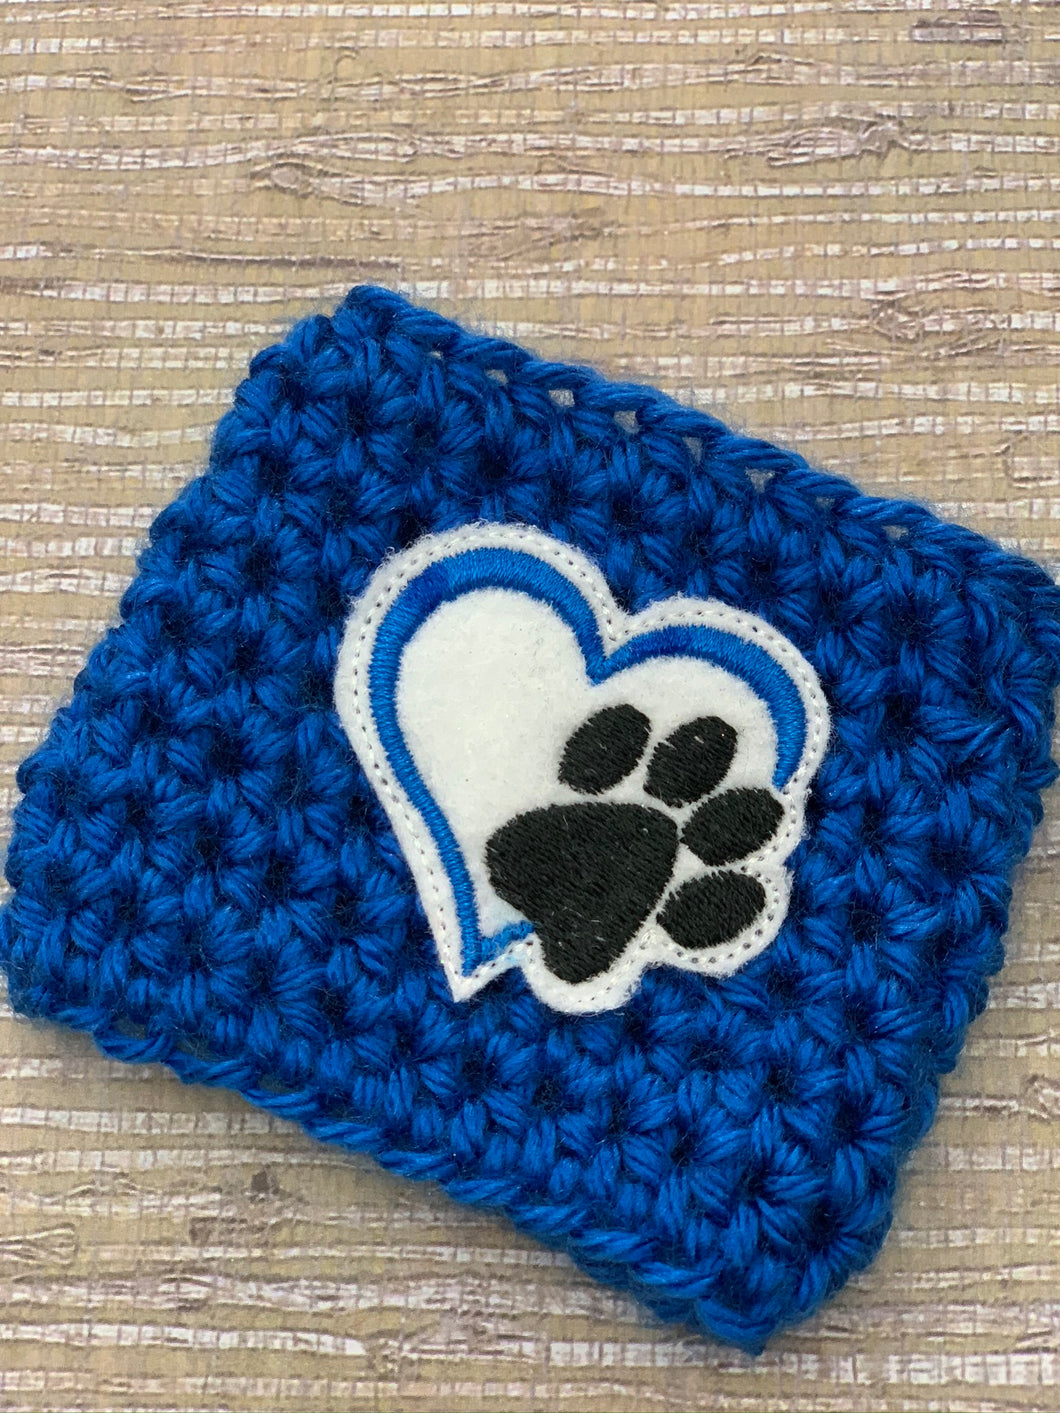 Dog Paw on Blue Reusable Eco Friendly Hot and Cold Beverage Cup Cozy